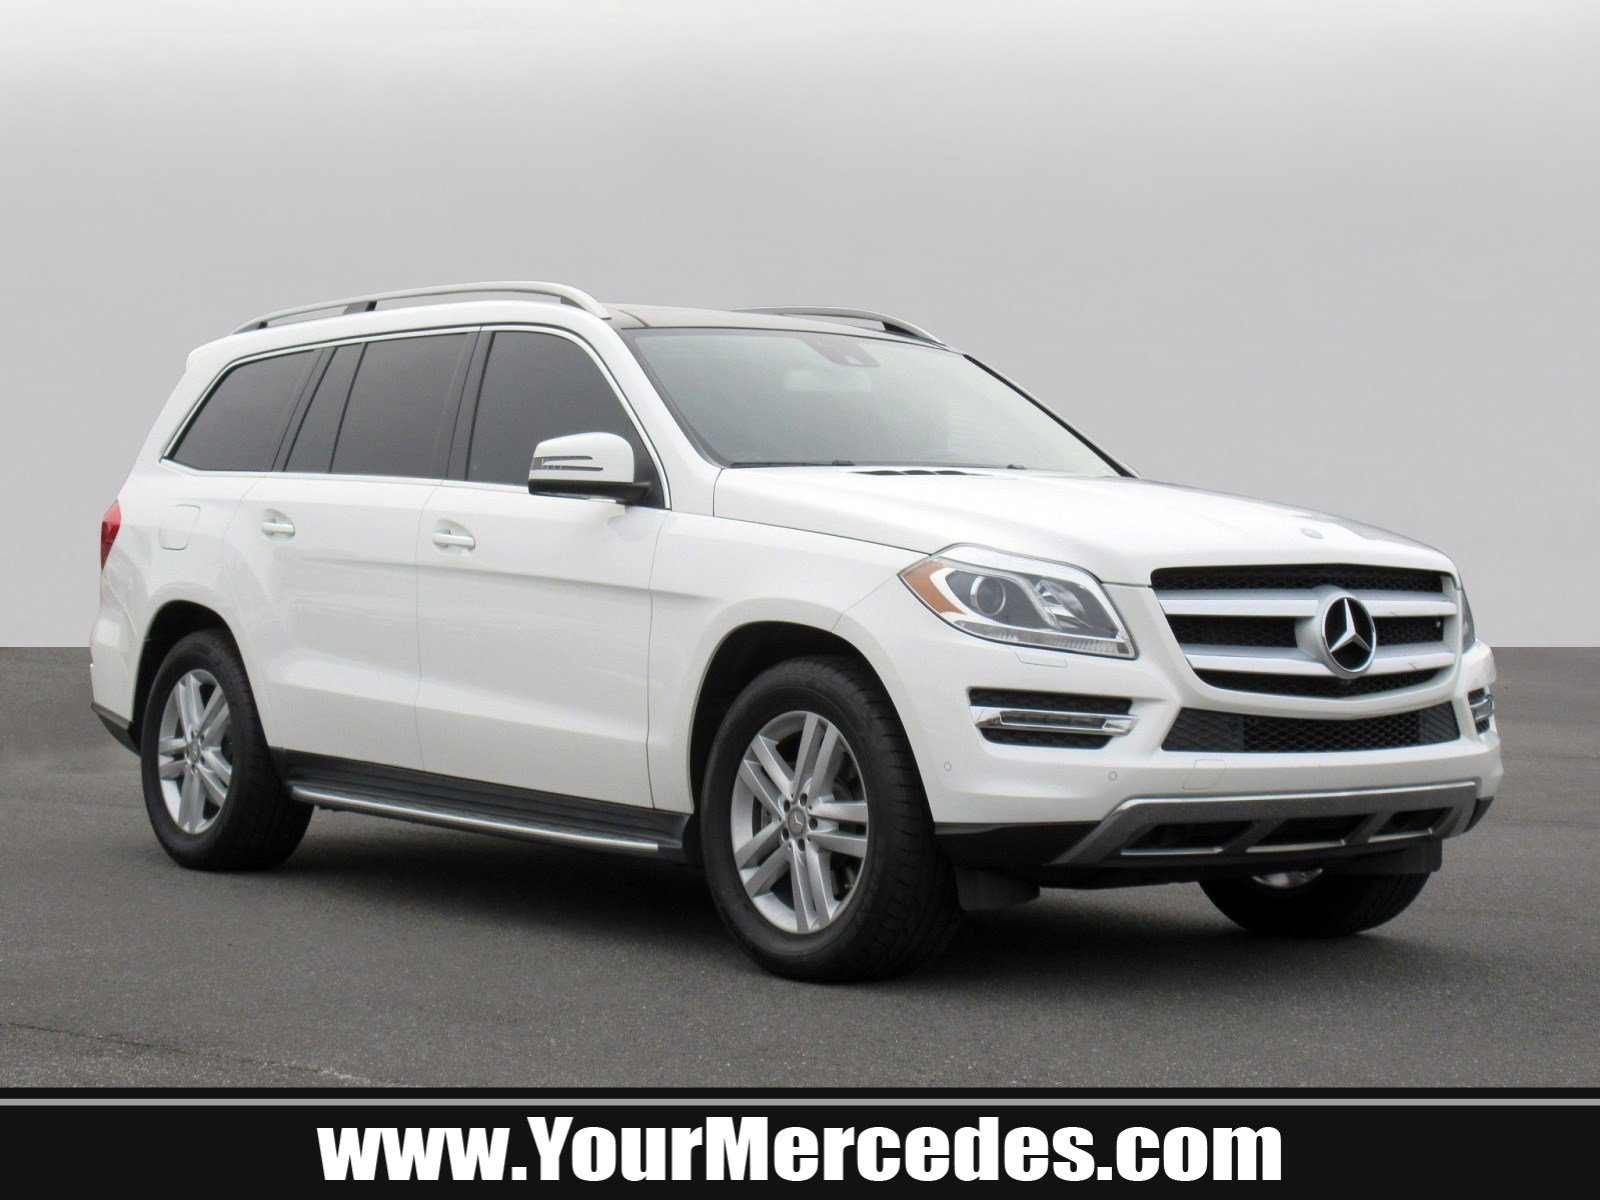 Certified Pre Owned 2016 Mercedes Benz GL GL 450 SUV in Egg Harbor